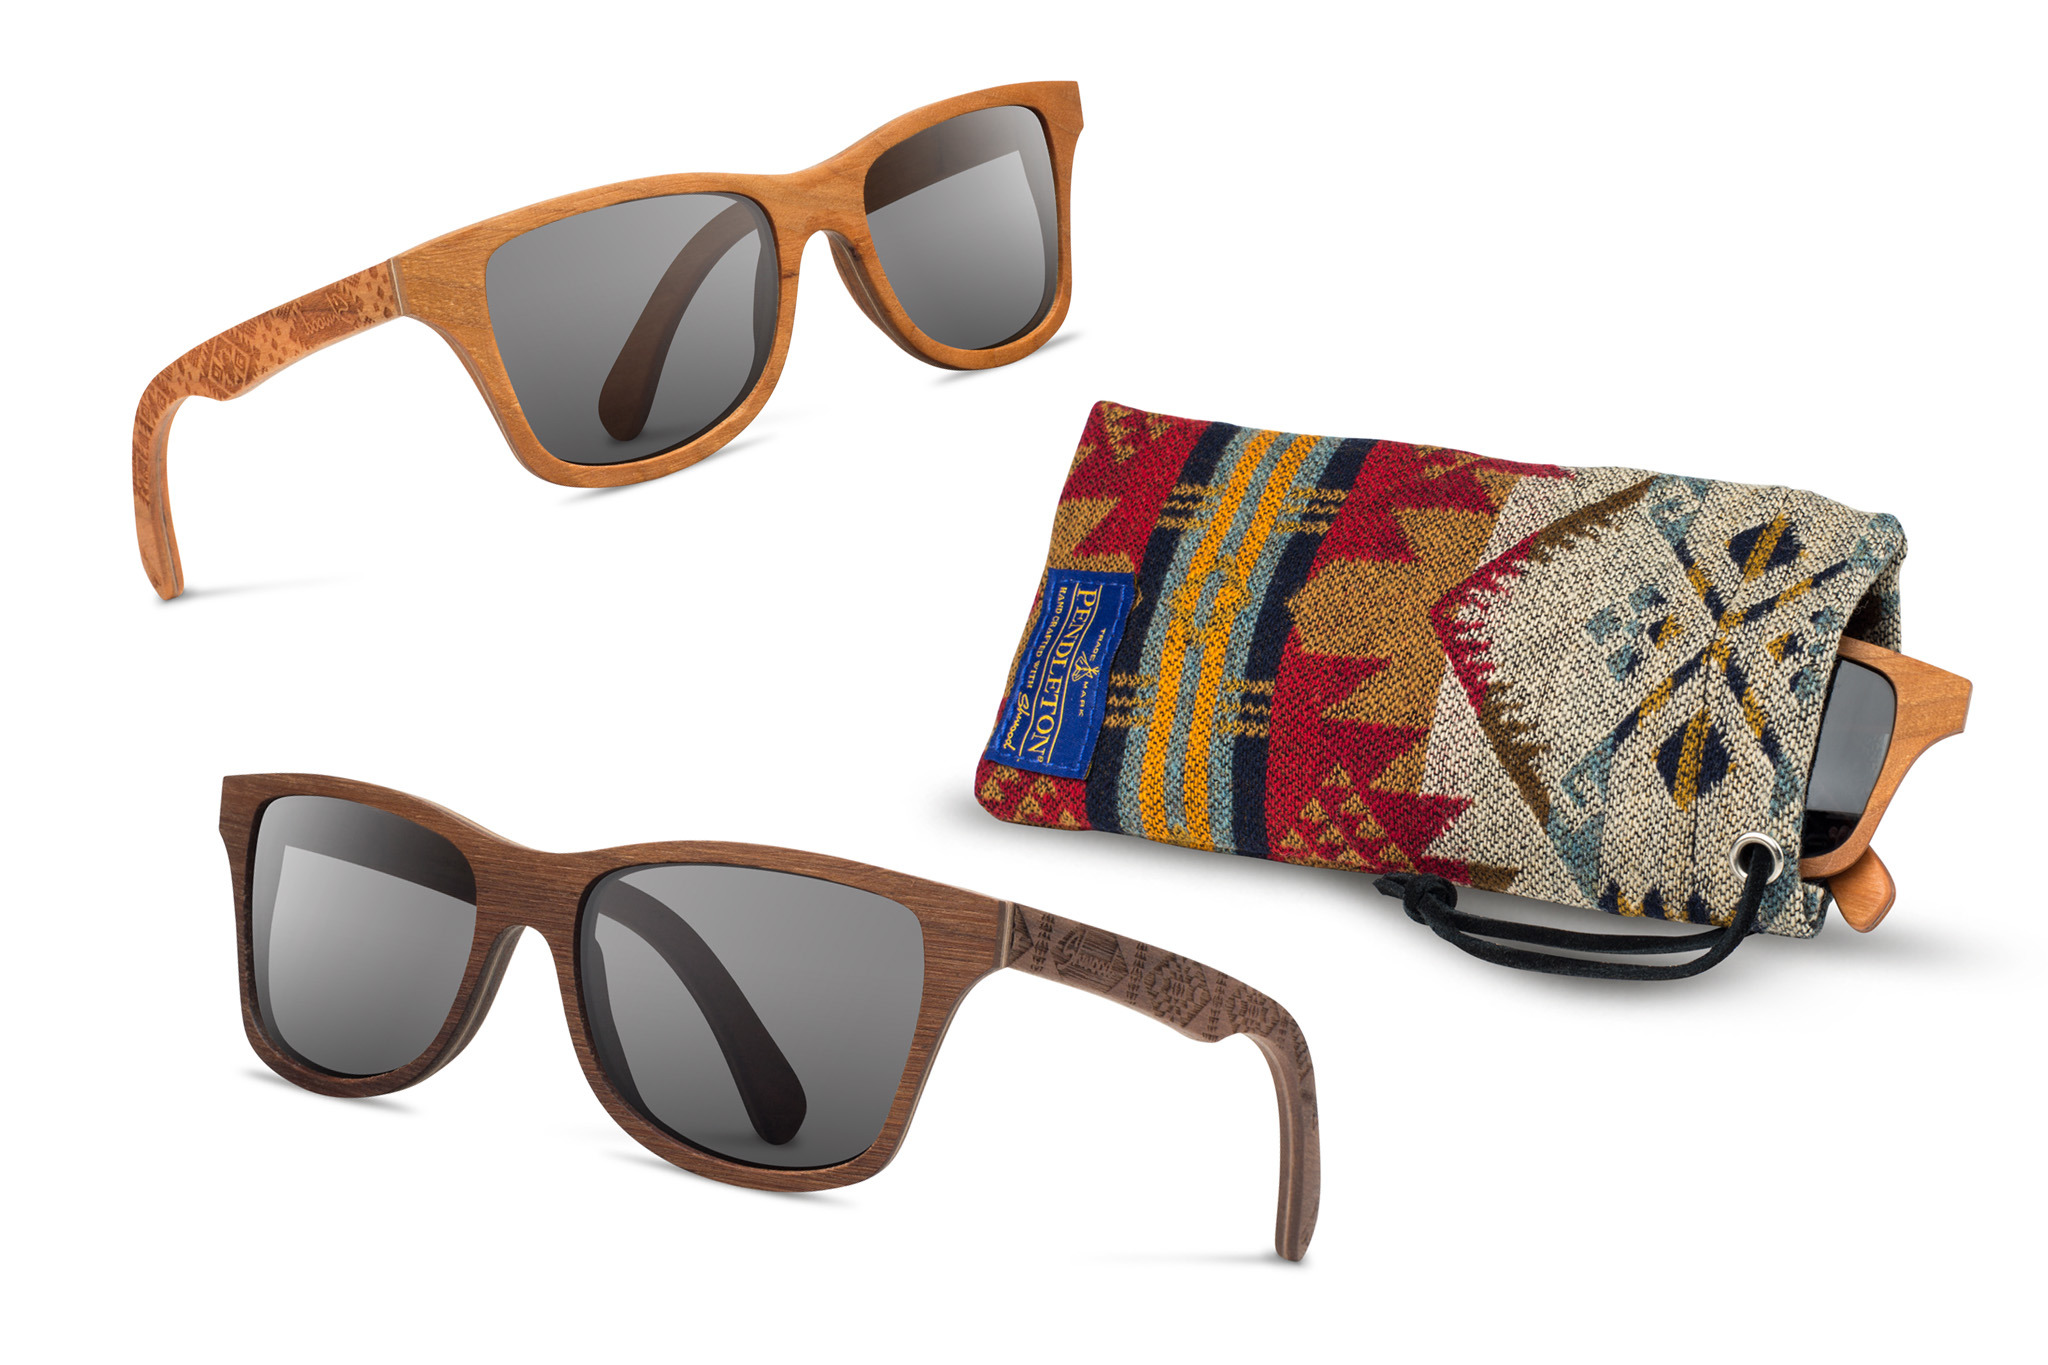 A pair of Shwood for Pendleton sunglasses